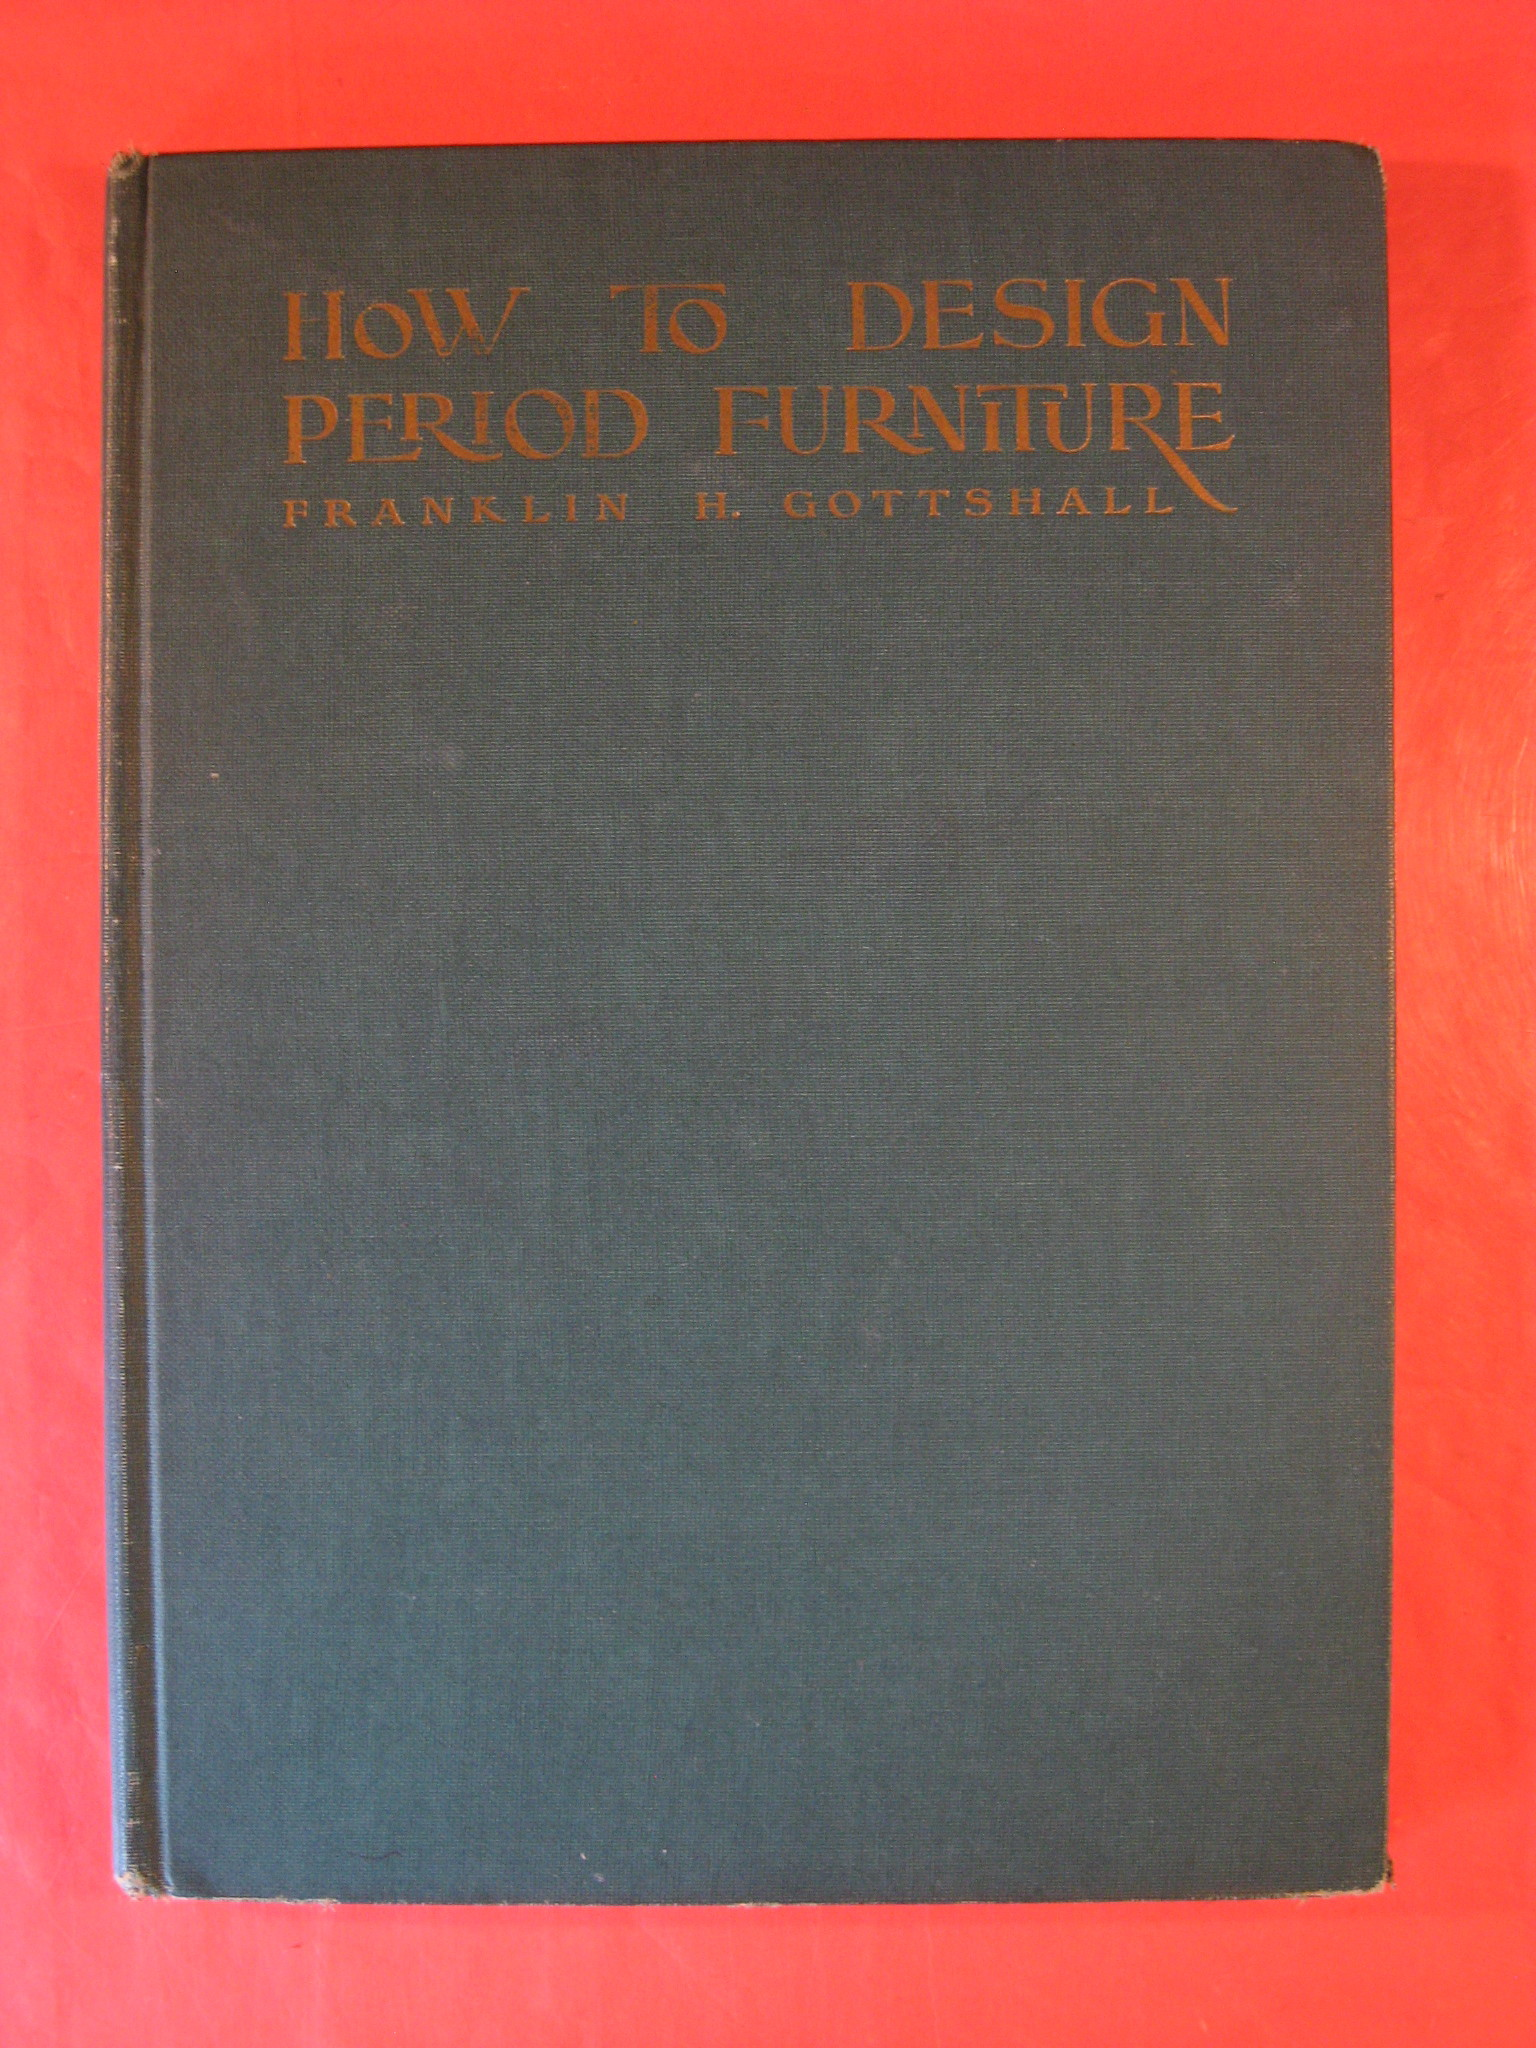 How to Design Period Furniture, Gottshall, Franklin H.